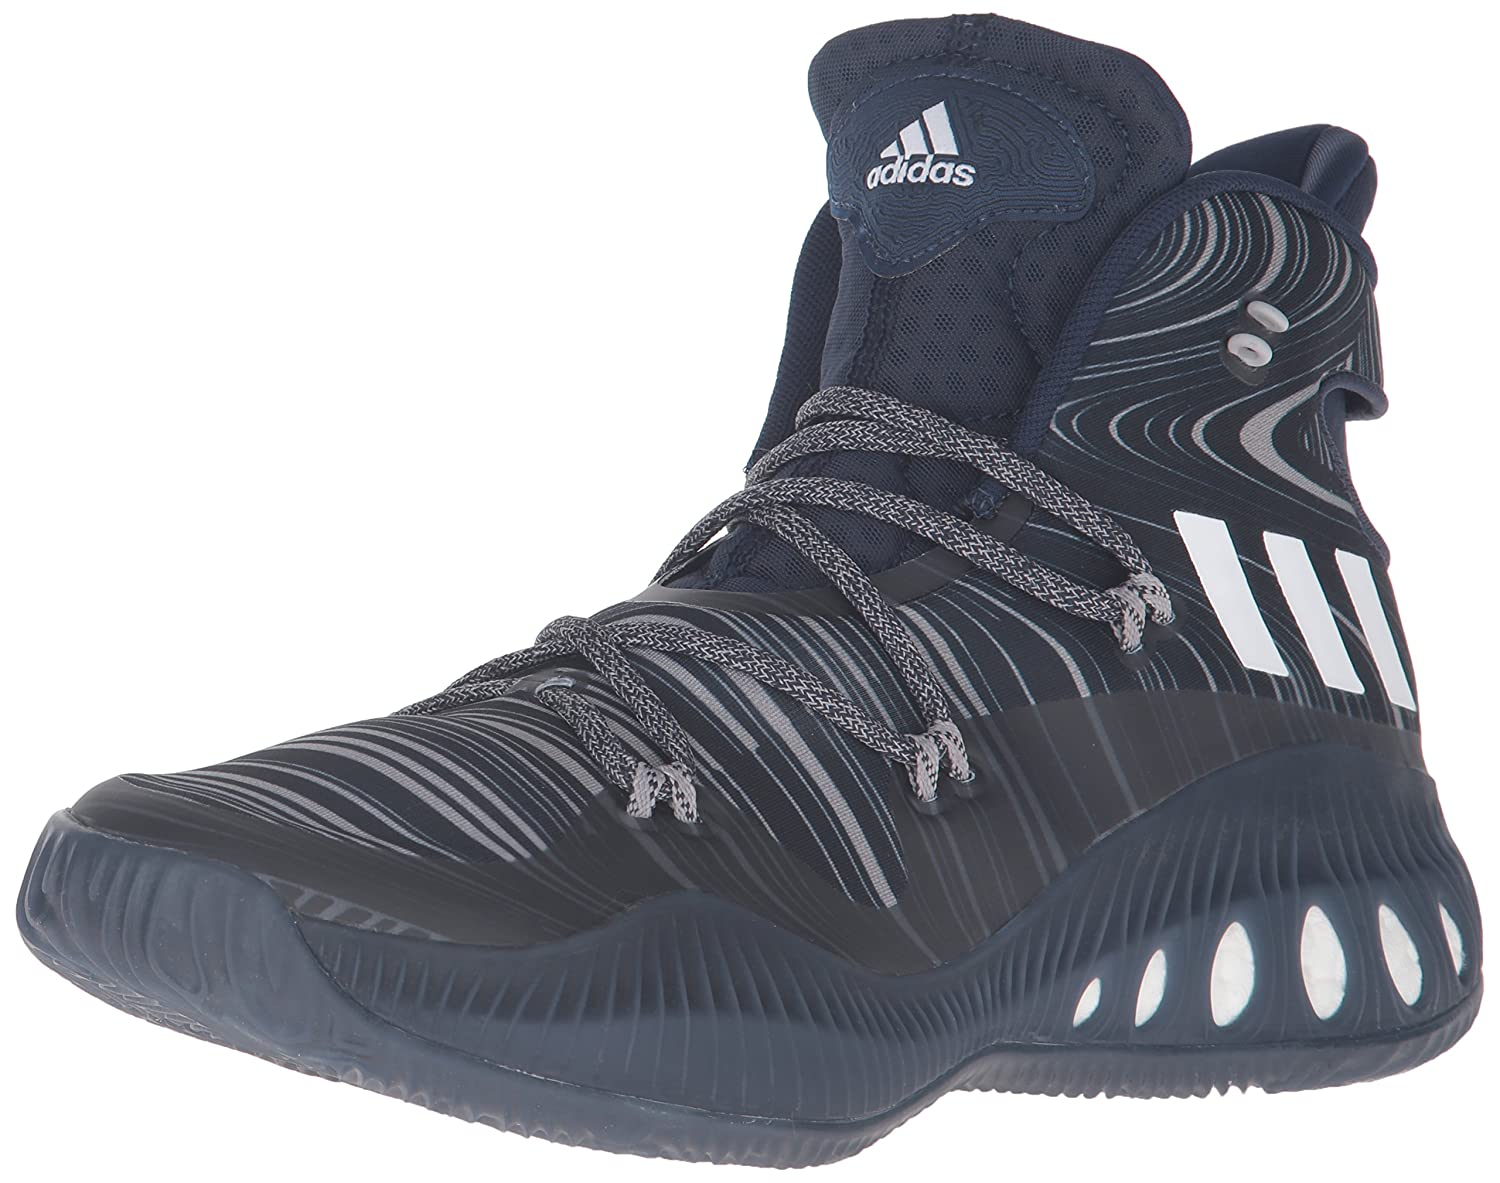 adidas Performance Men's Crazy Explosive Basketball Shoe B01C7WC6J6 5.5 M US|Collegiate Navy/White/Dark Navy